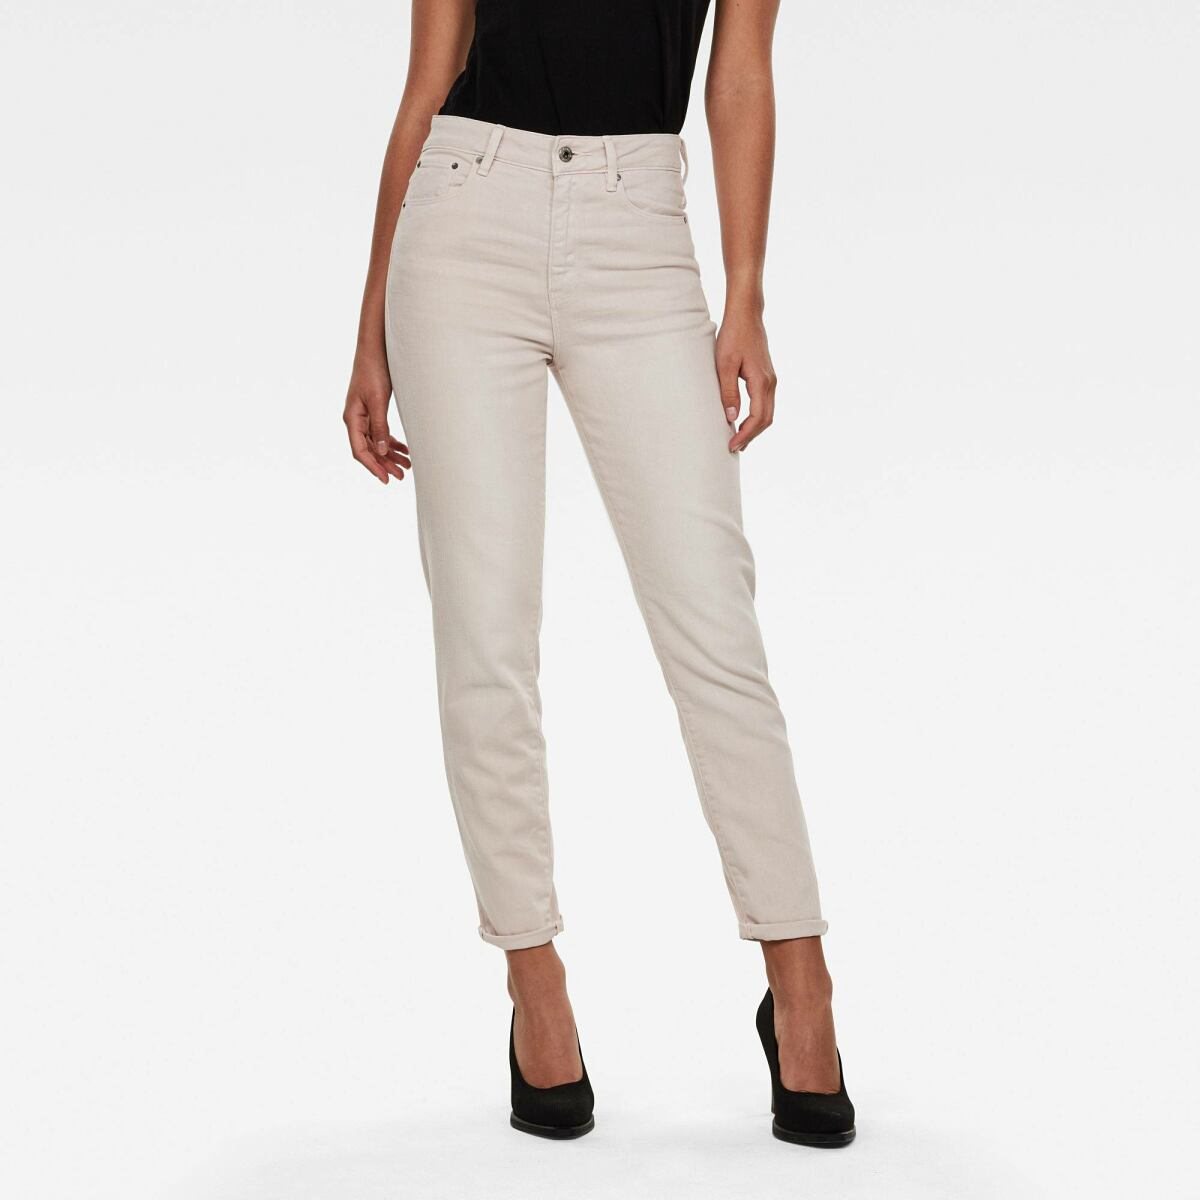 Grey Woman Jeans 3301 High Straight 90's Ankle Jeans G-Star WOMEN